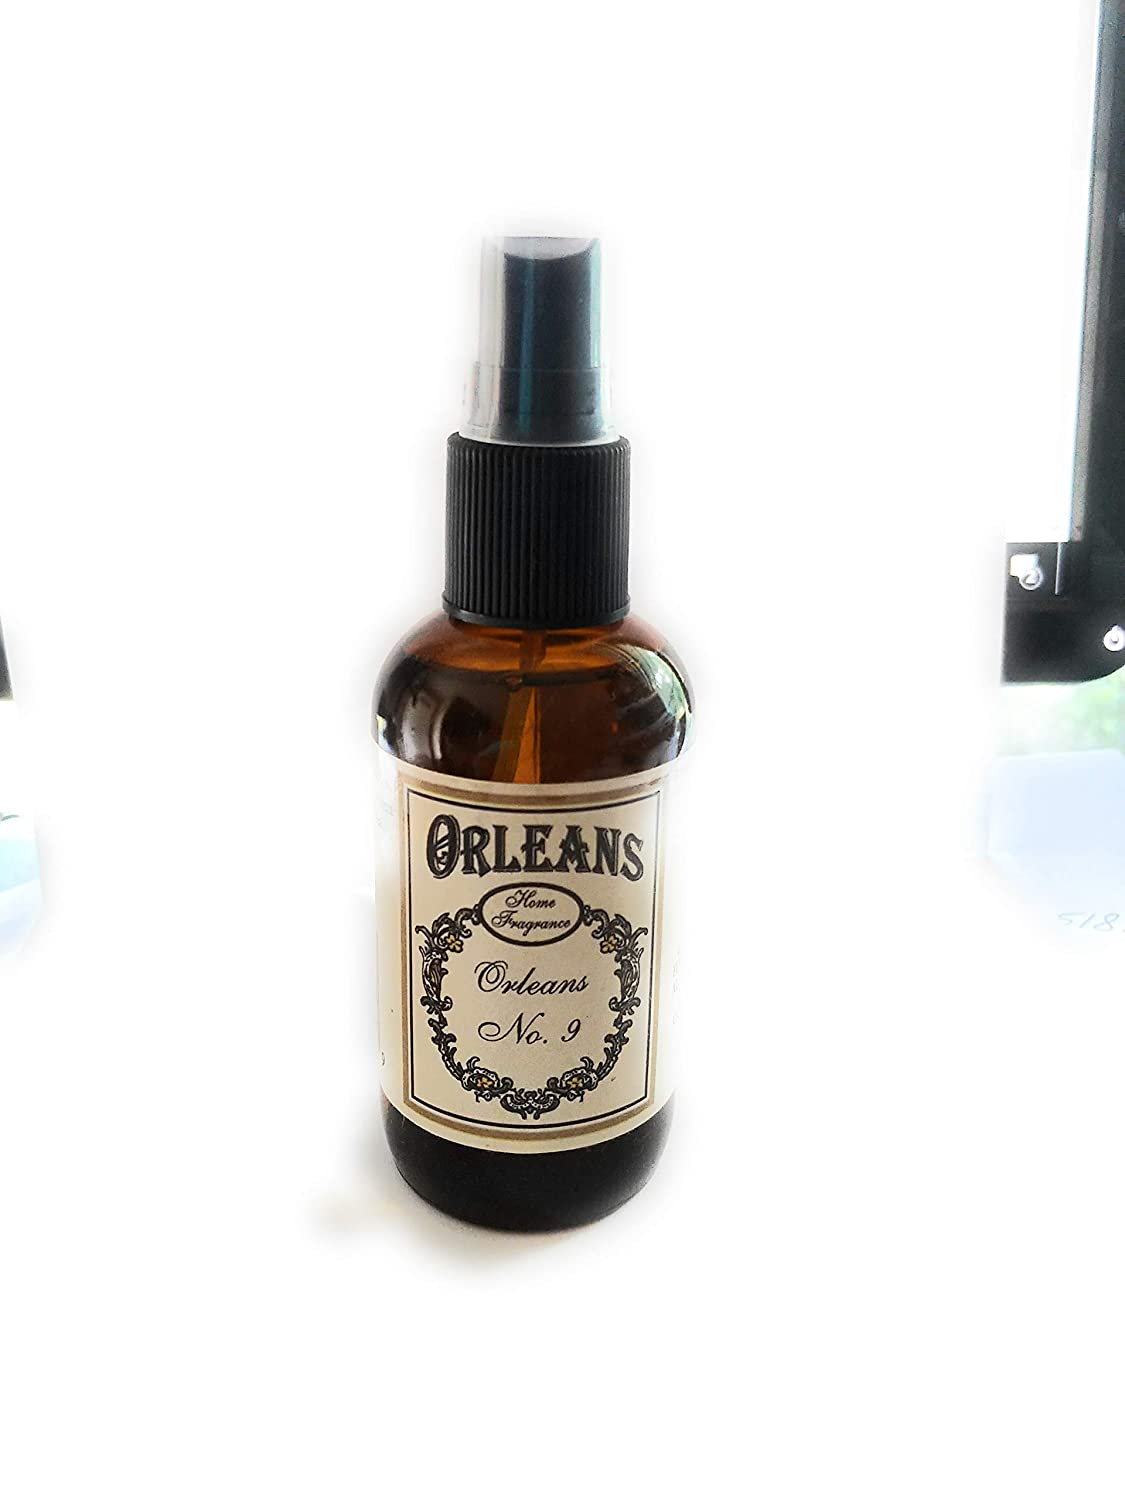 Orleans Home Fragrances Scented Room Spray - Orleans No. 9